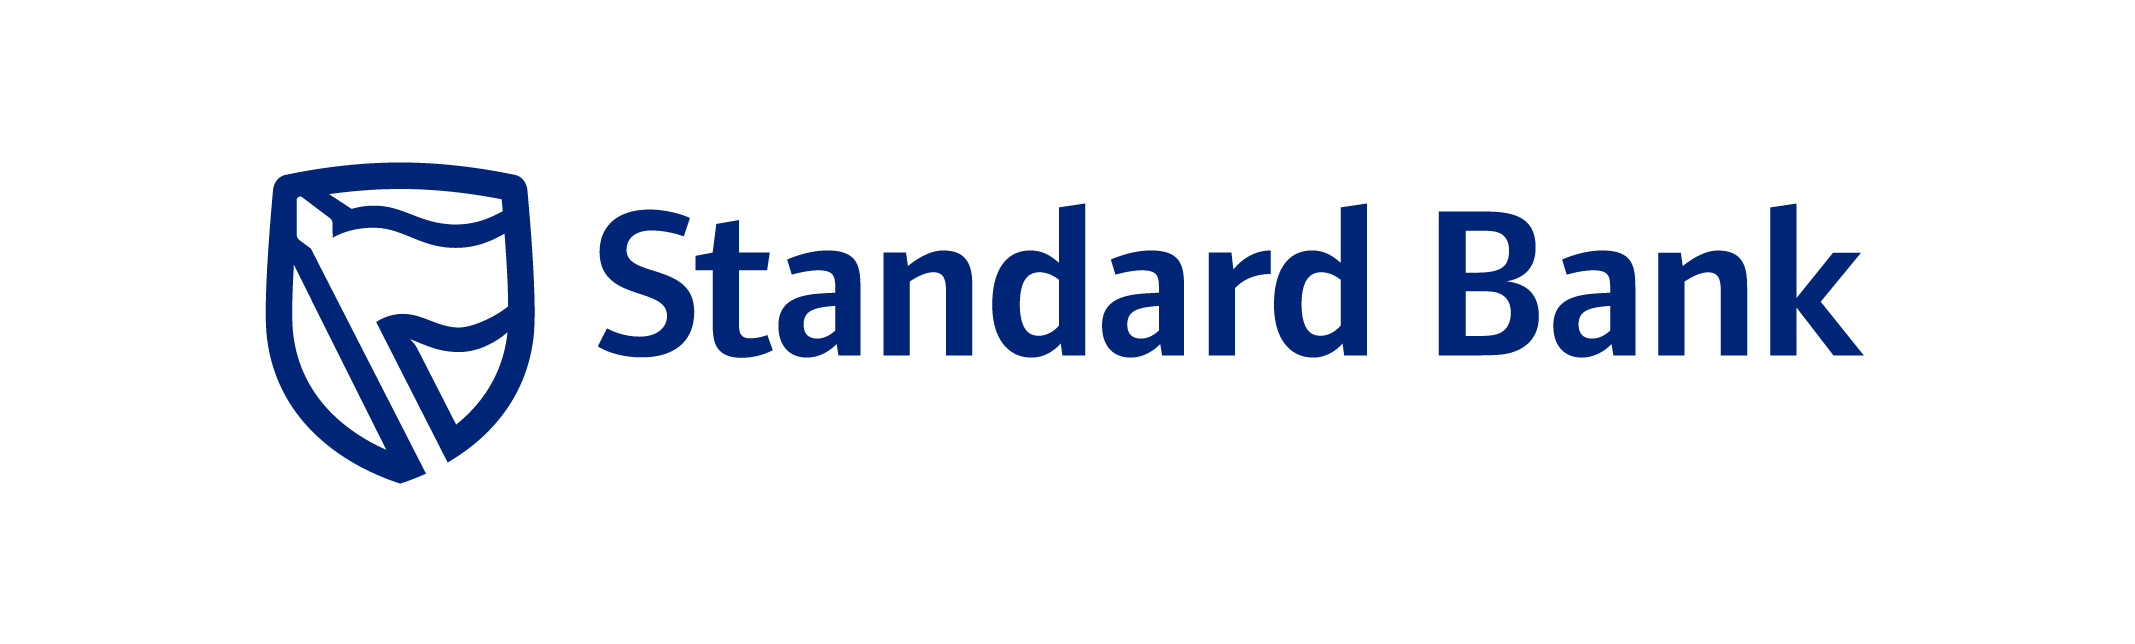 Standard Bank Group Logo